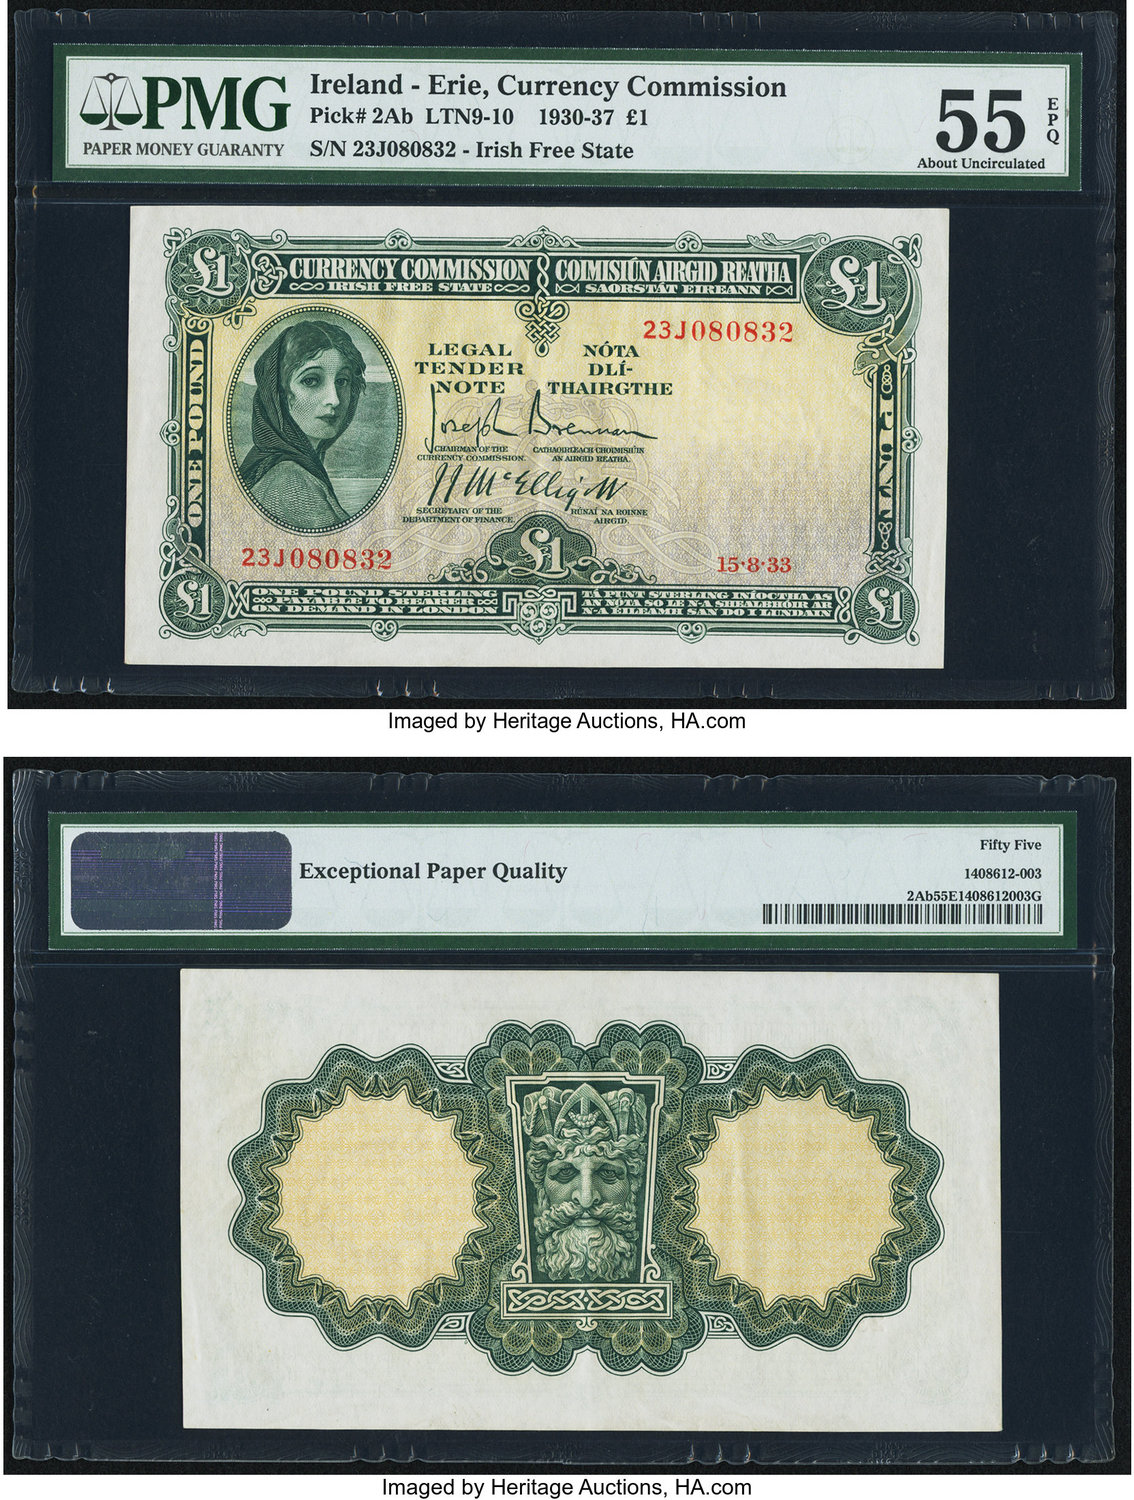 World Currency Ireland Commission 1 15 8 33 Pick 2ab Great Color Is Retained By This Lightly Handled Irish